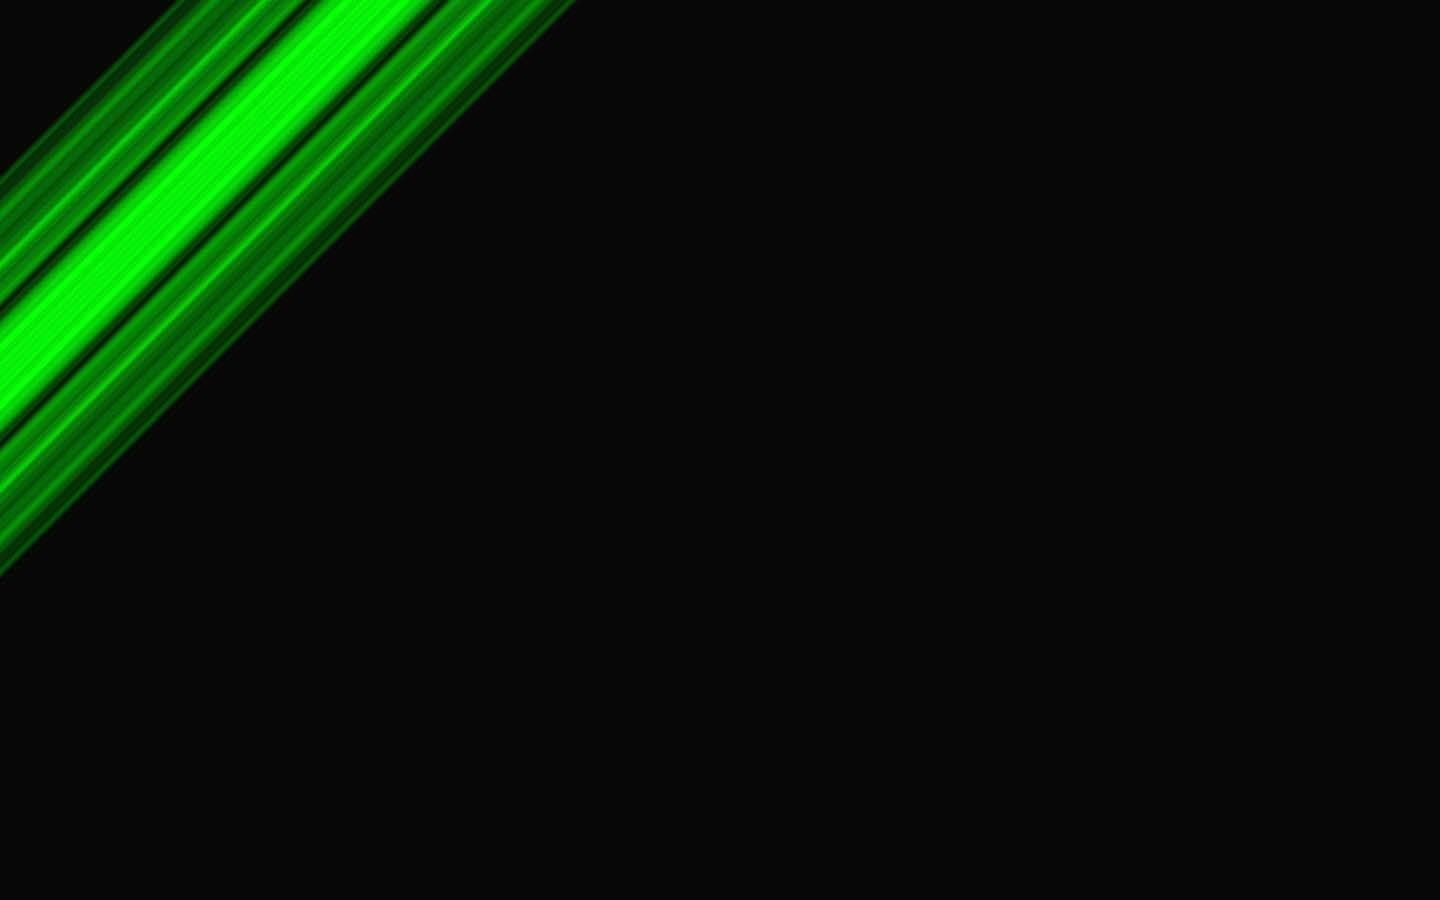 10 Latest Lime Green And Black Background FULL HD 1080p For PC Background